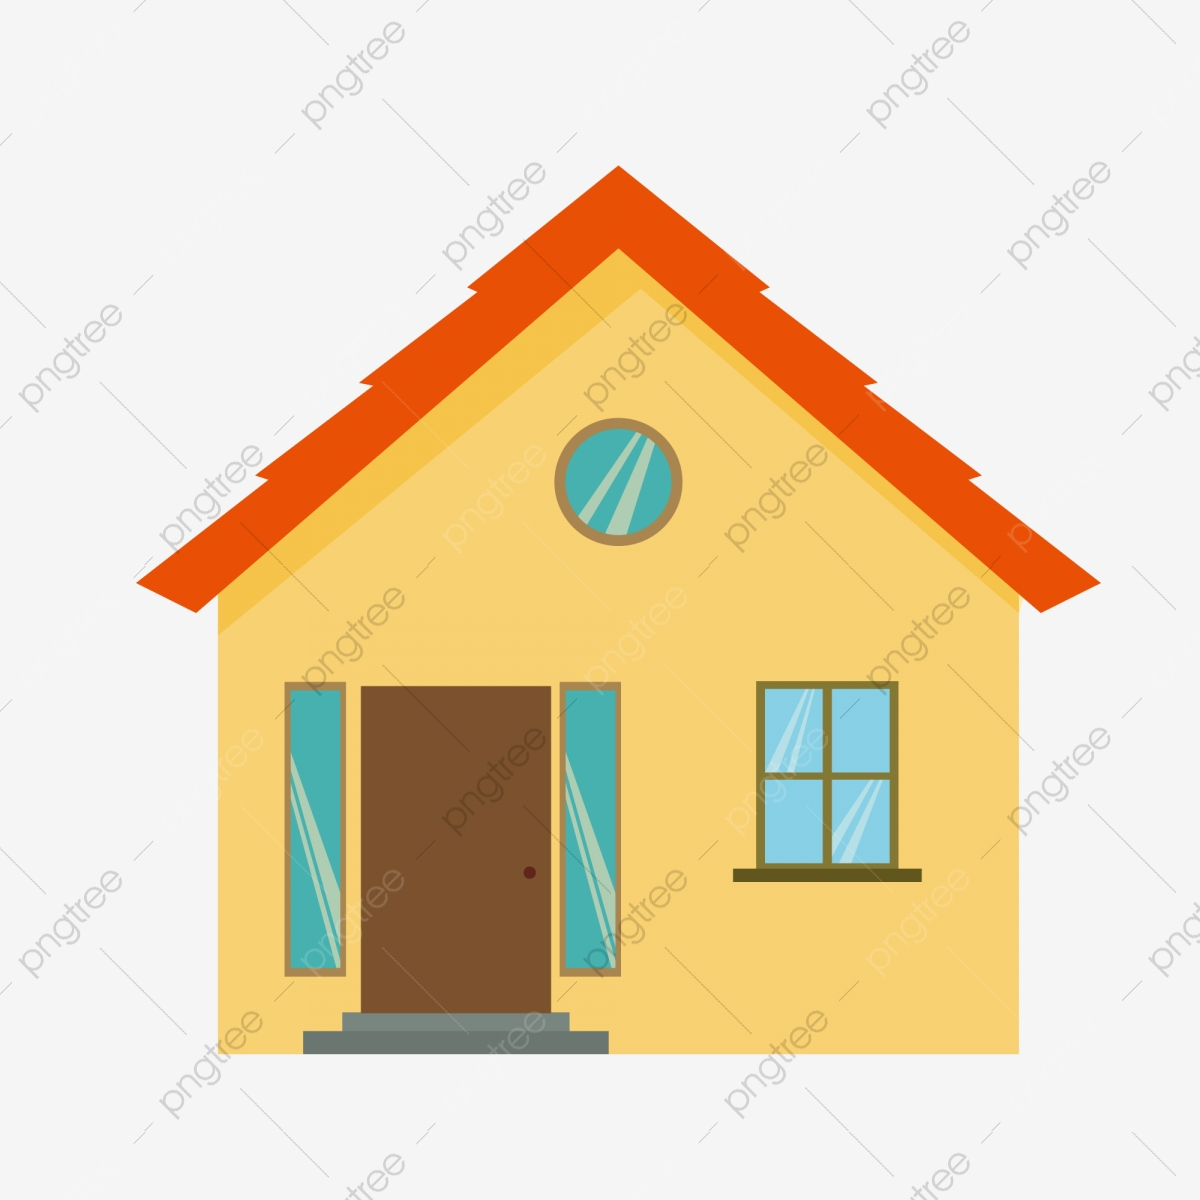 Red Roof Yellow House Hand Painted Design Cartoon Round Window Png And Vector With Transparent Background For Free Download